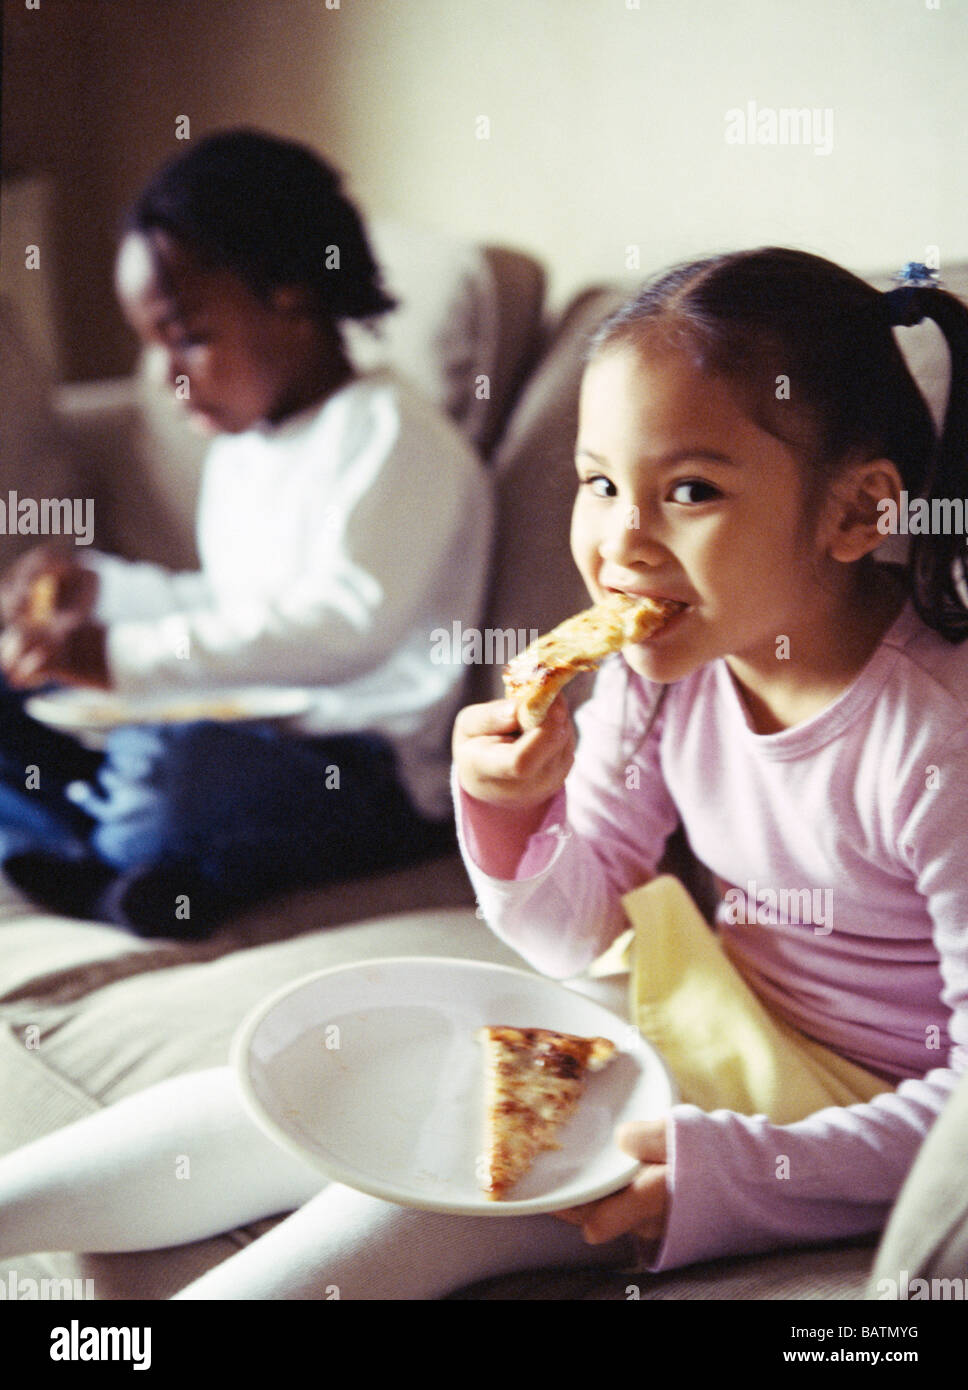 Junk food. Five-year-old girl taking a bite from a slice of pizza. In the background, a five-year-old boy is also - Stock Image